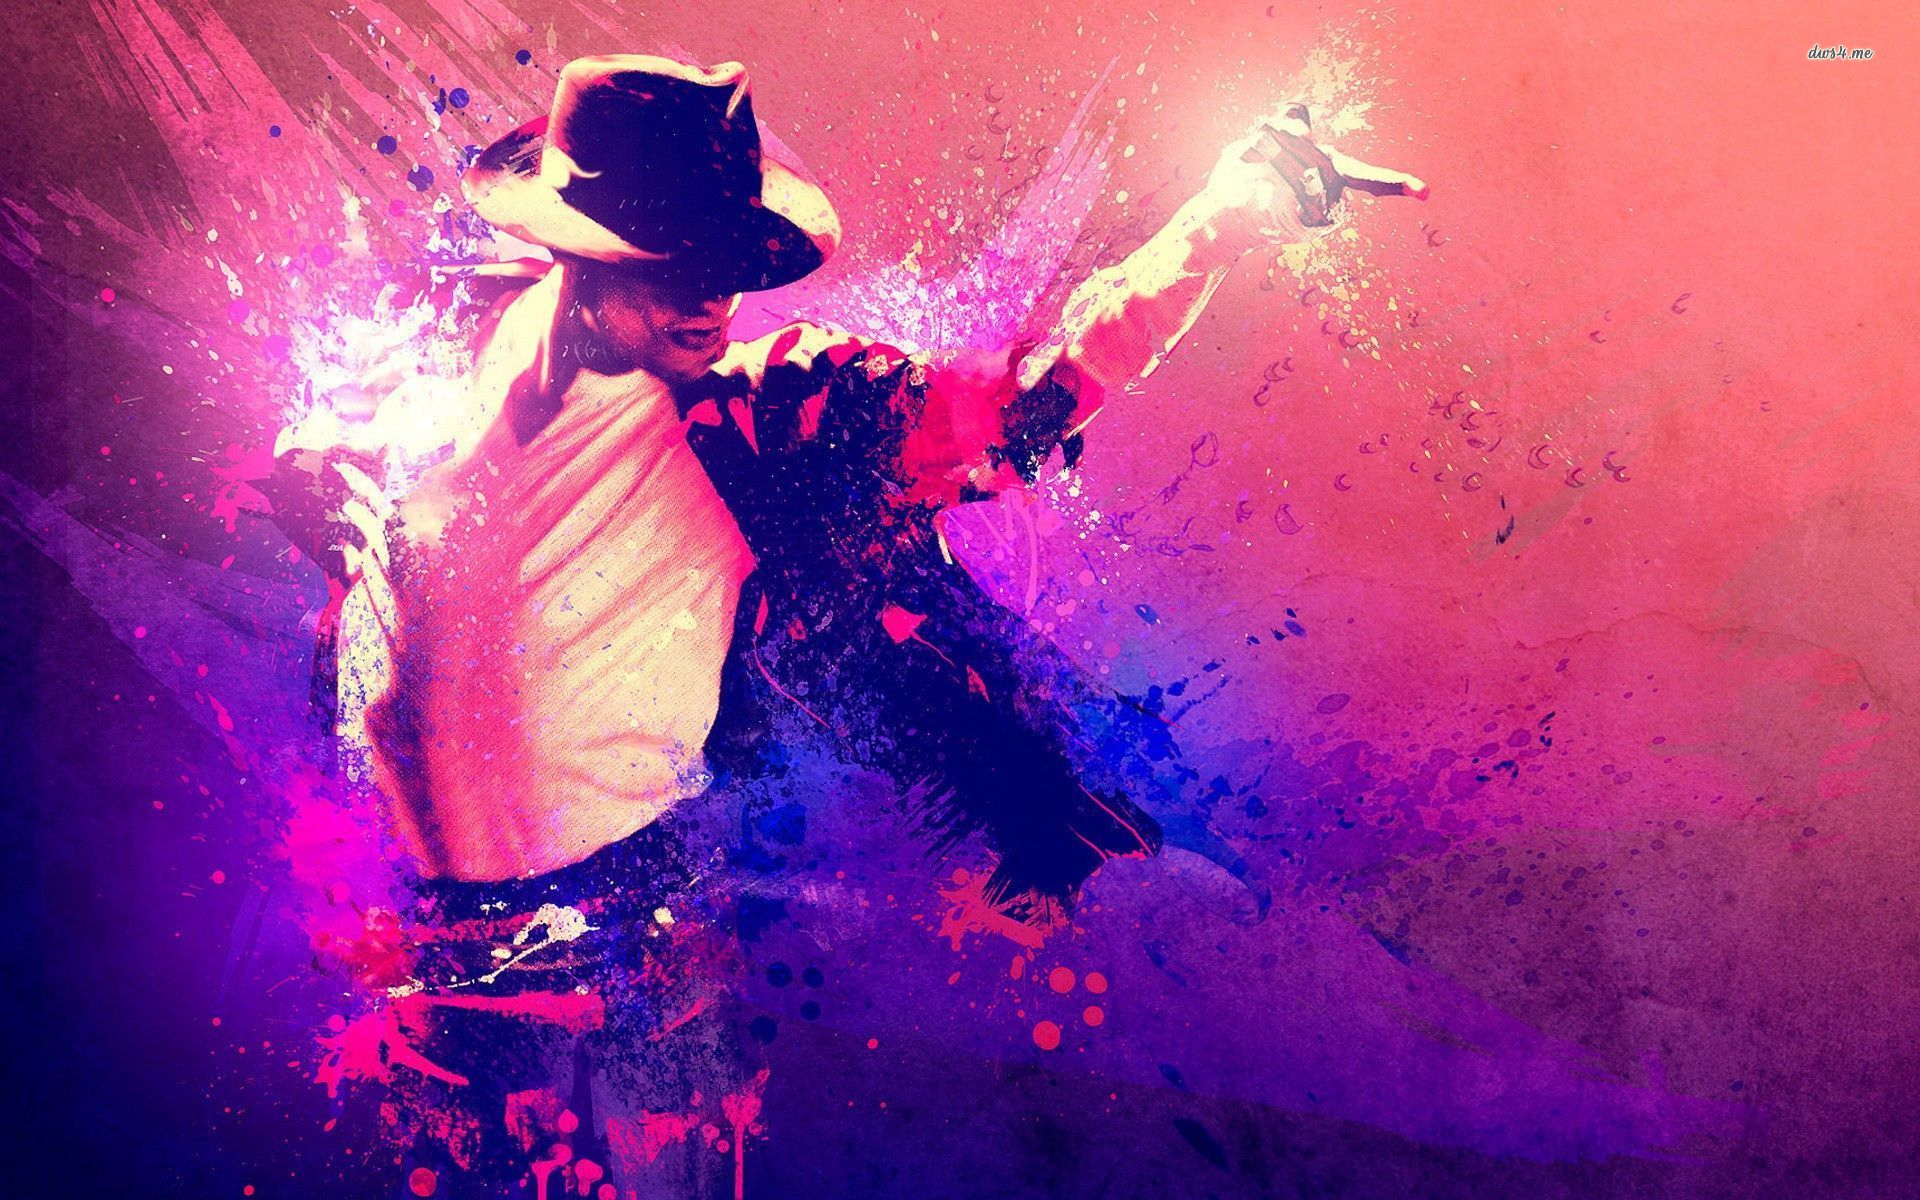 Michael Jackson Wallpapers HD the one and only